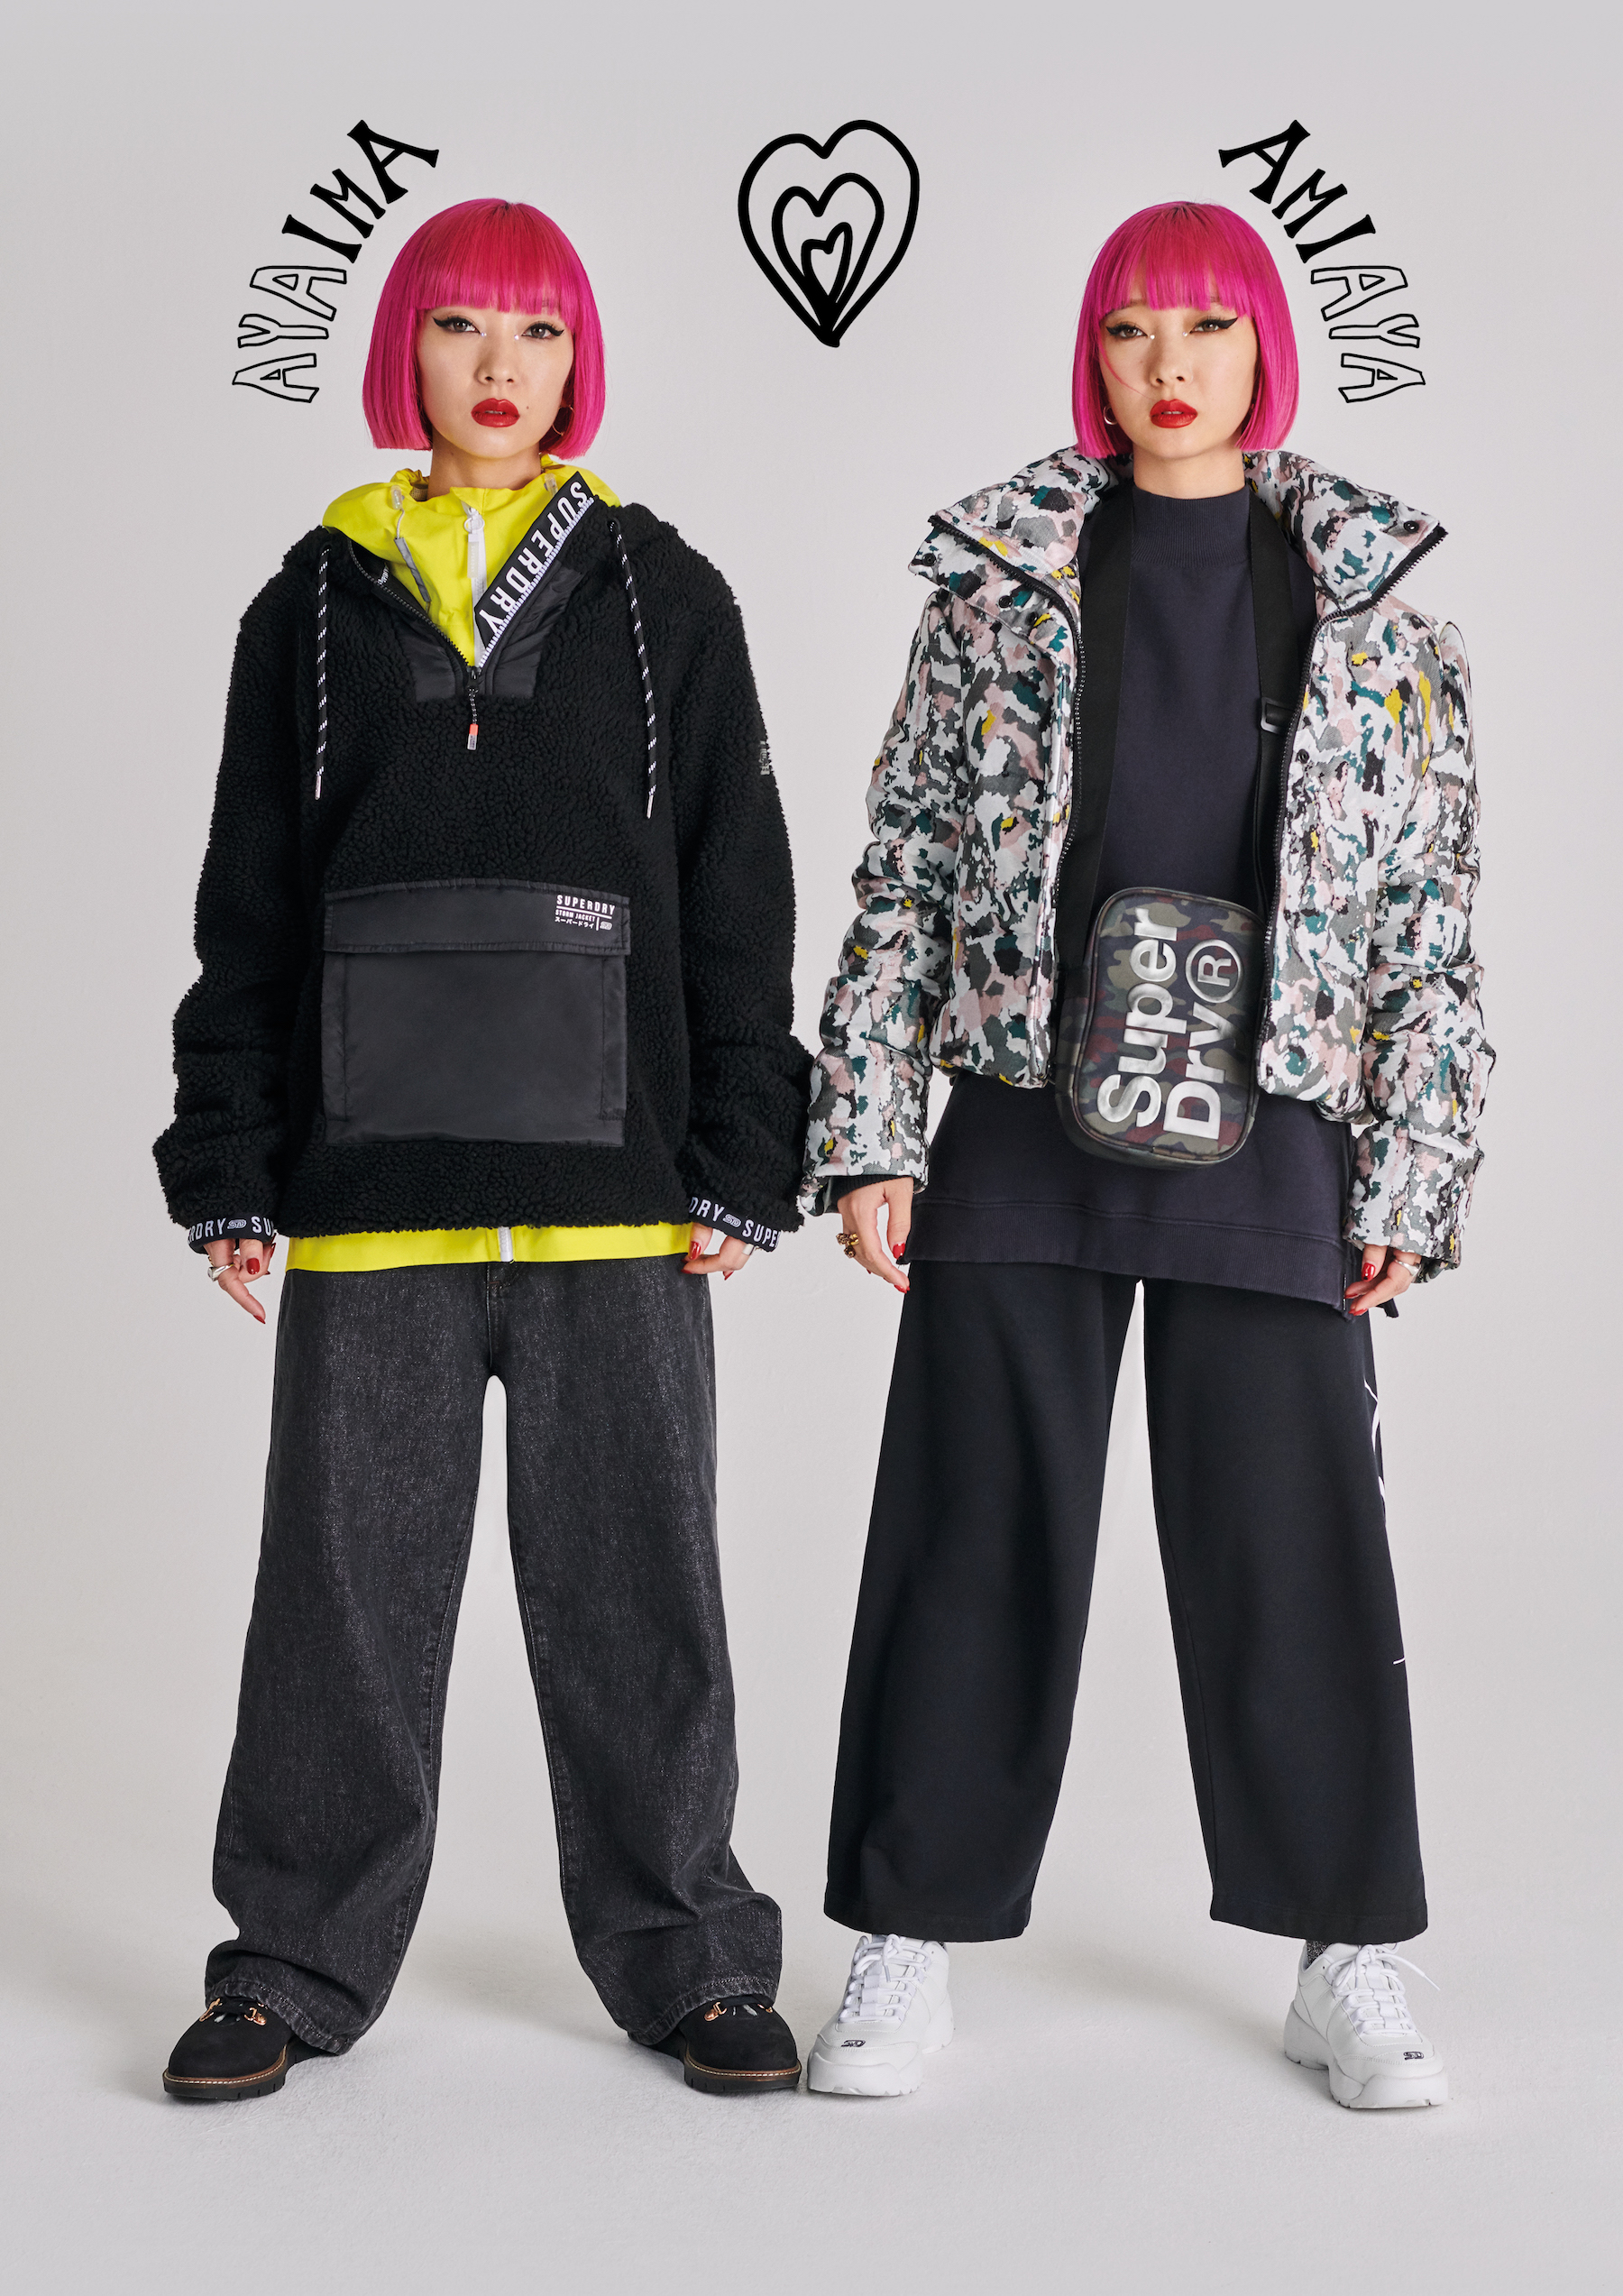 CR14204_PR_AW19_Annotated_Image_Gen_Simple_Twins.jpg